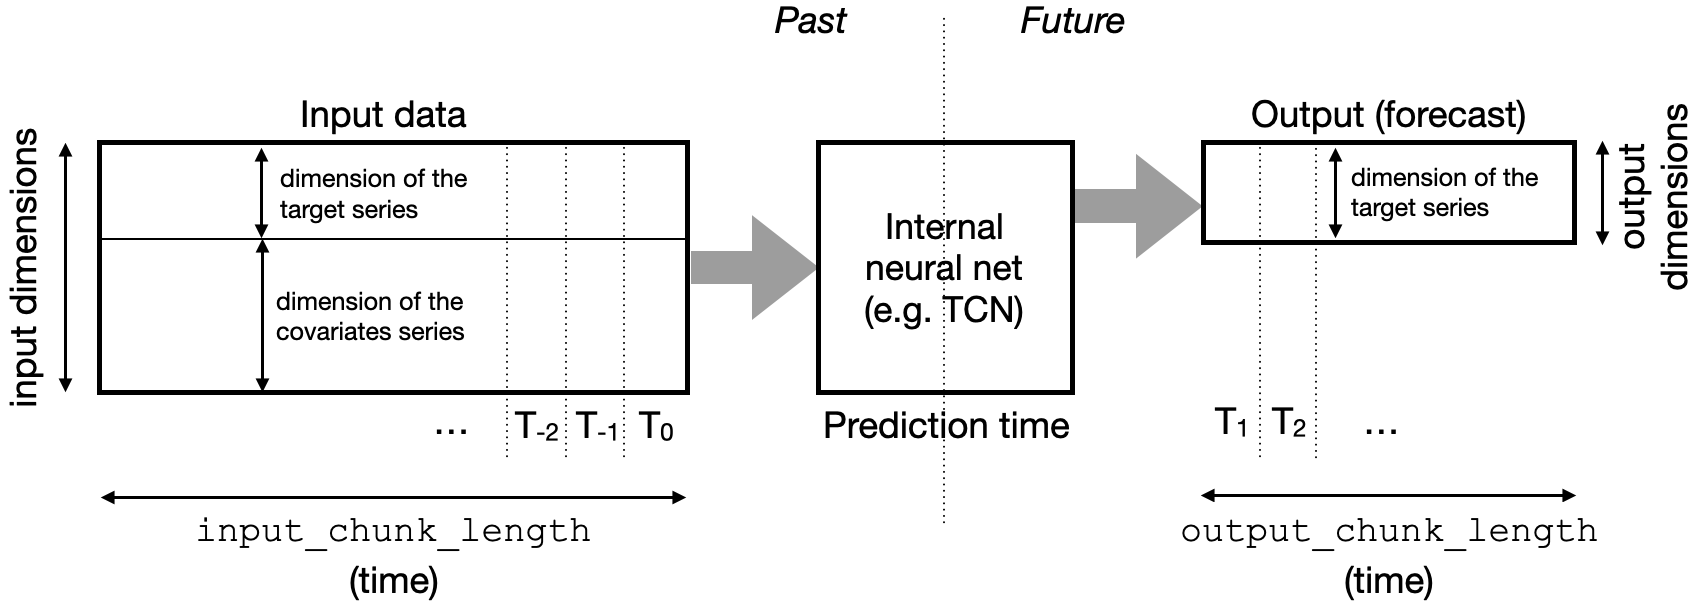 """The input and output time series chunks consumed and produced by the neural network to make forecasts. This example is for """"past covariates"""" model; where past values of the covariate series are stacked with past target values to form the neural net input."""